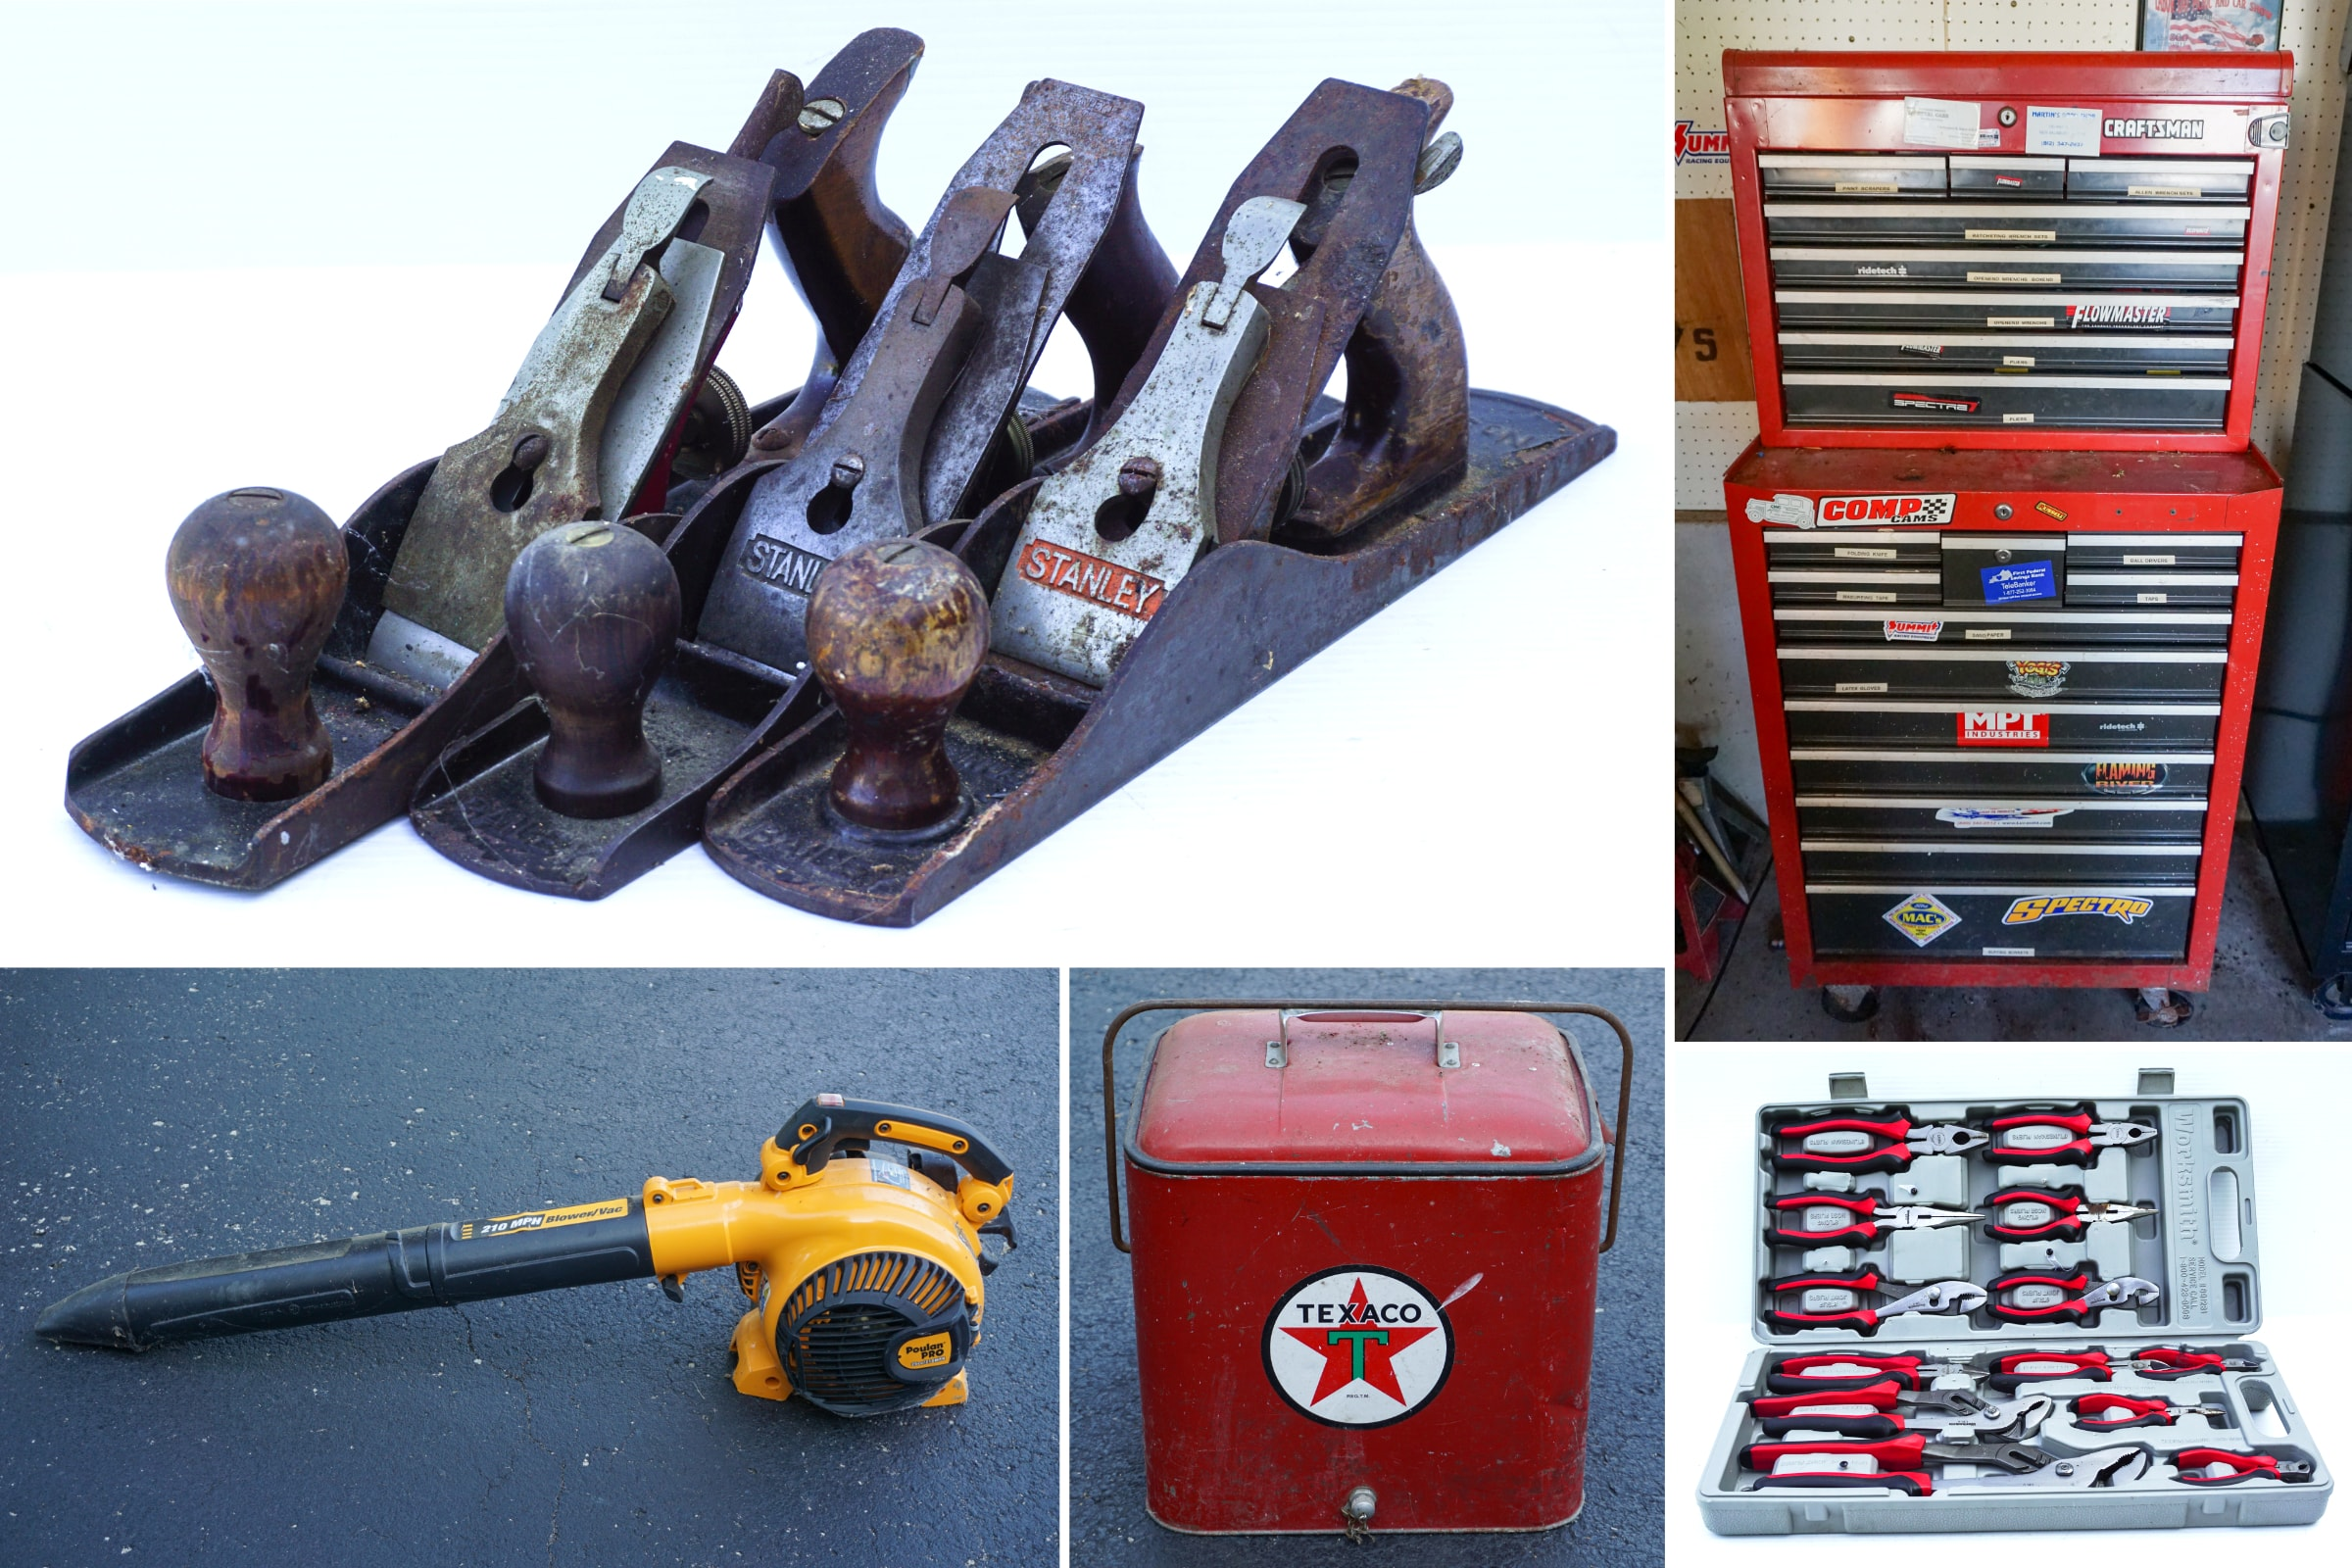 Woodworking Tools Equipment Auction Harritt Group Inc